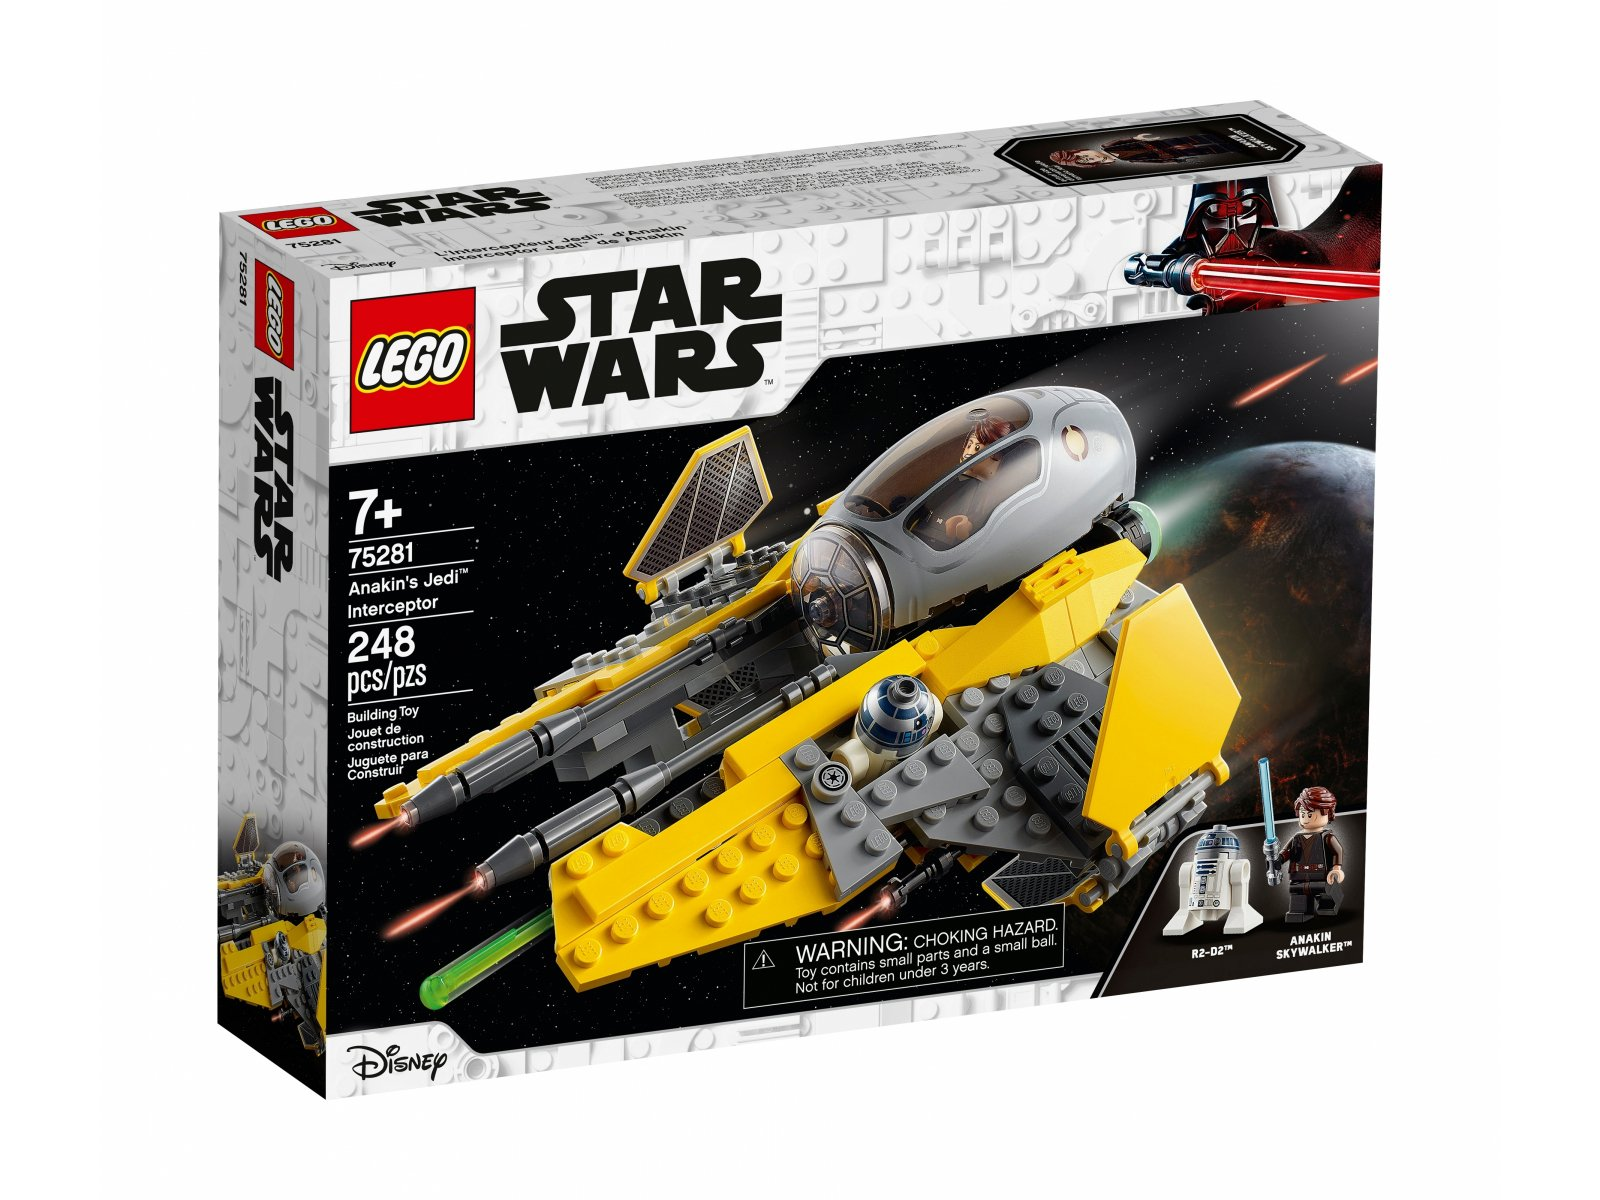 LEGO Star Wars 75281 Jedi™ Interceptor Anakina